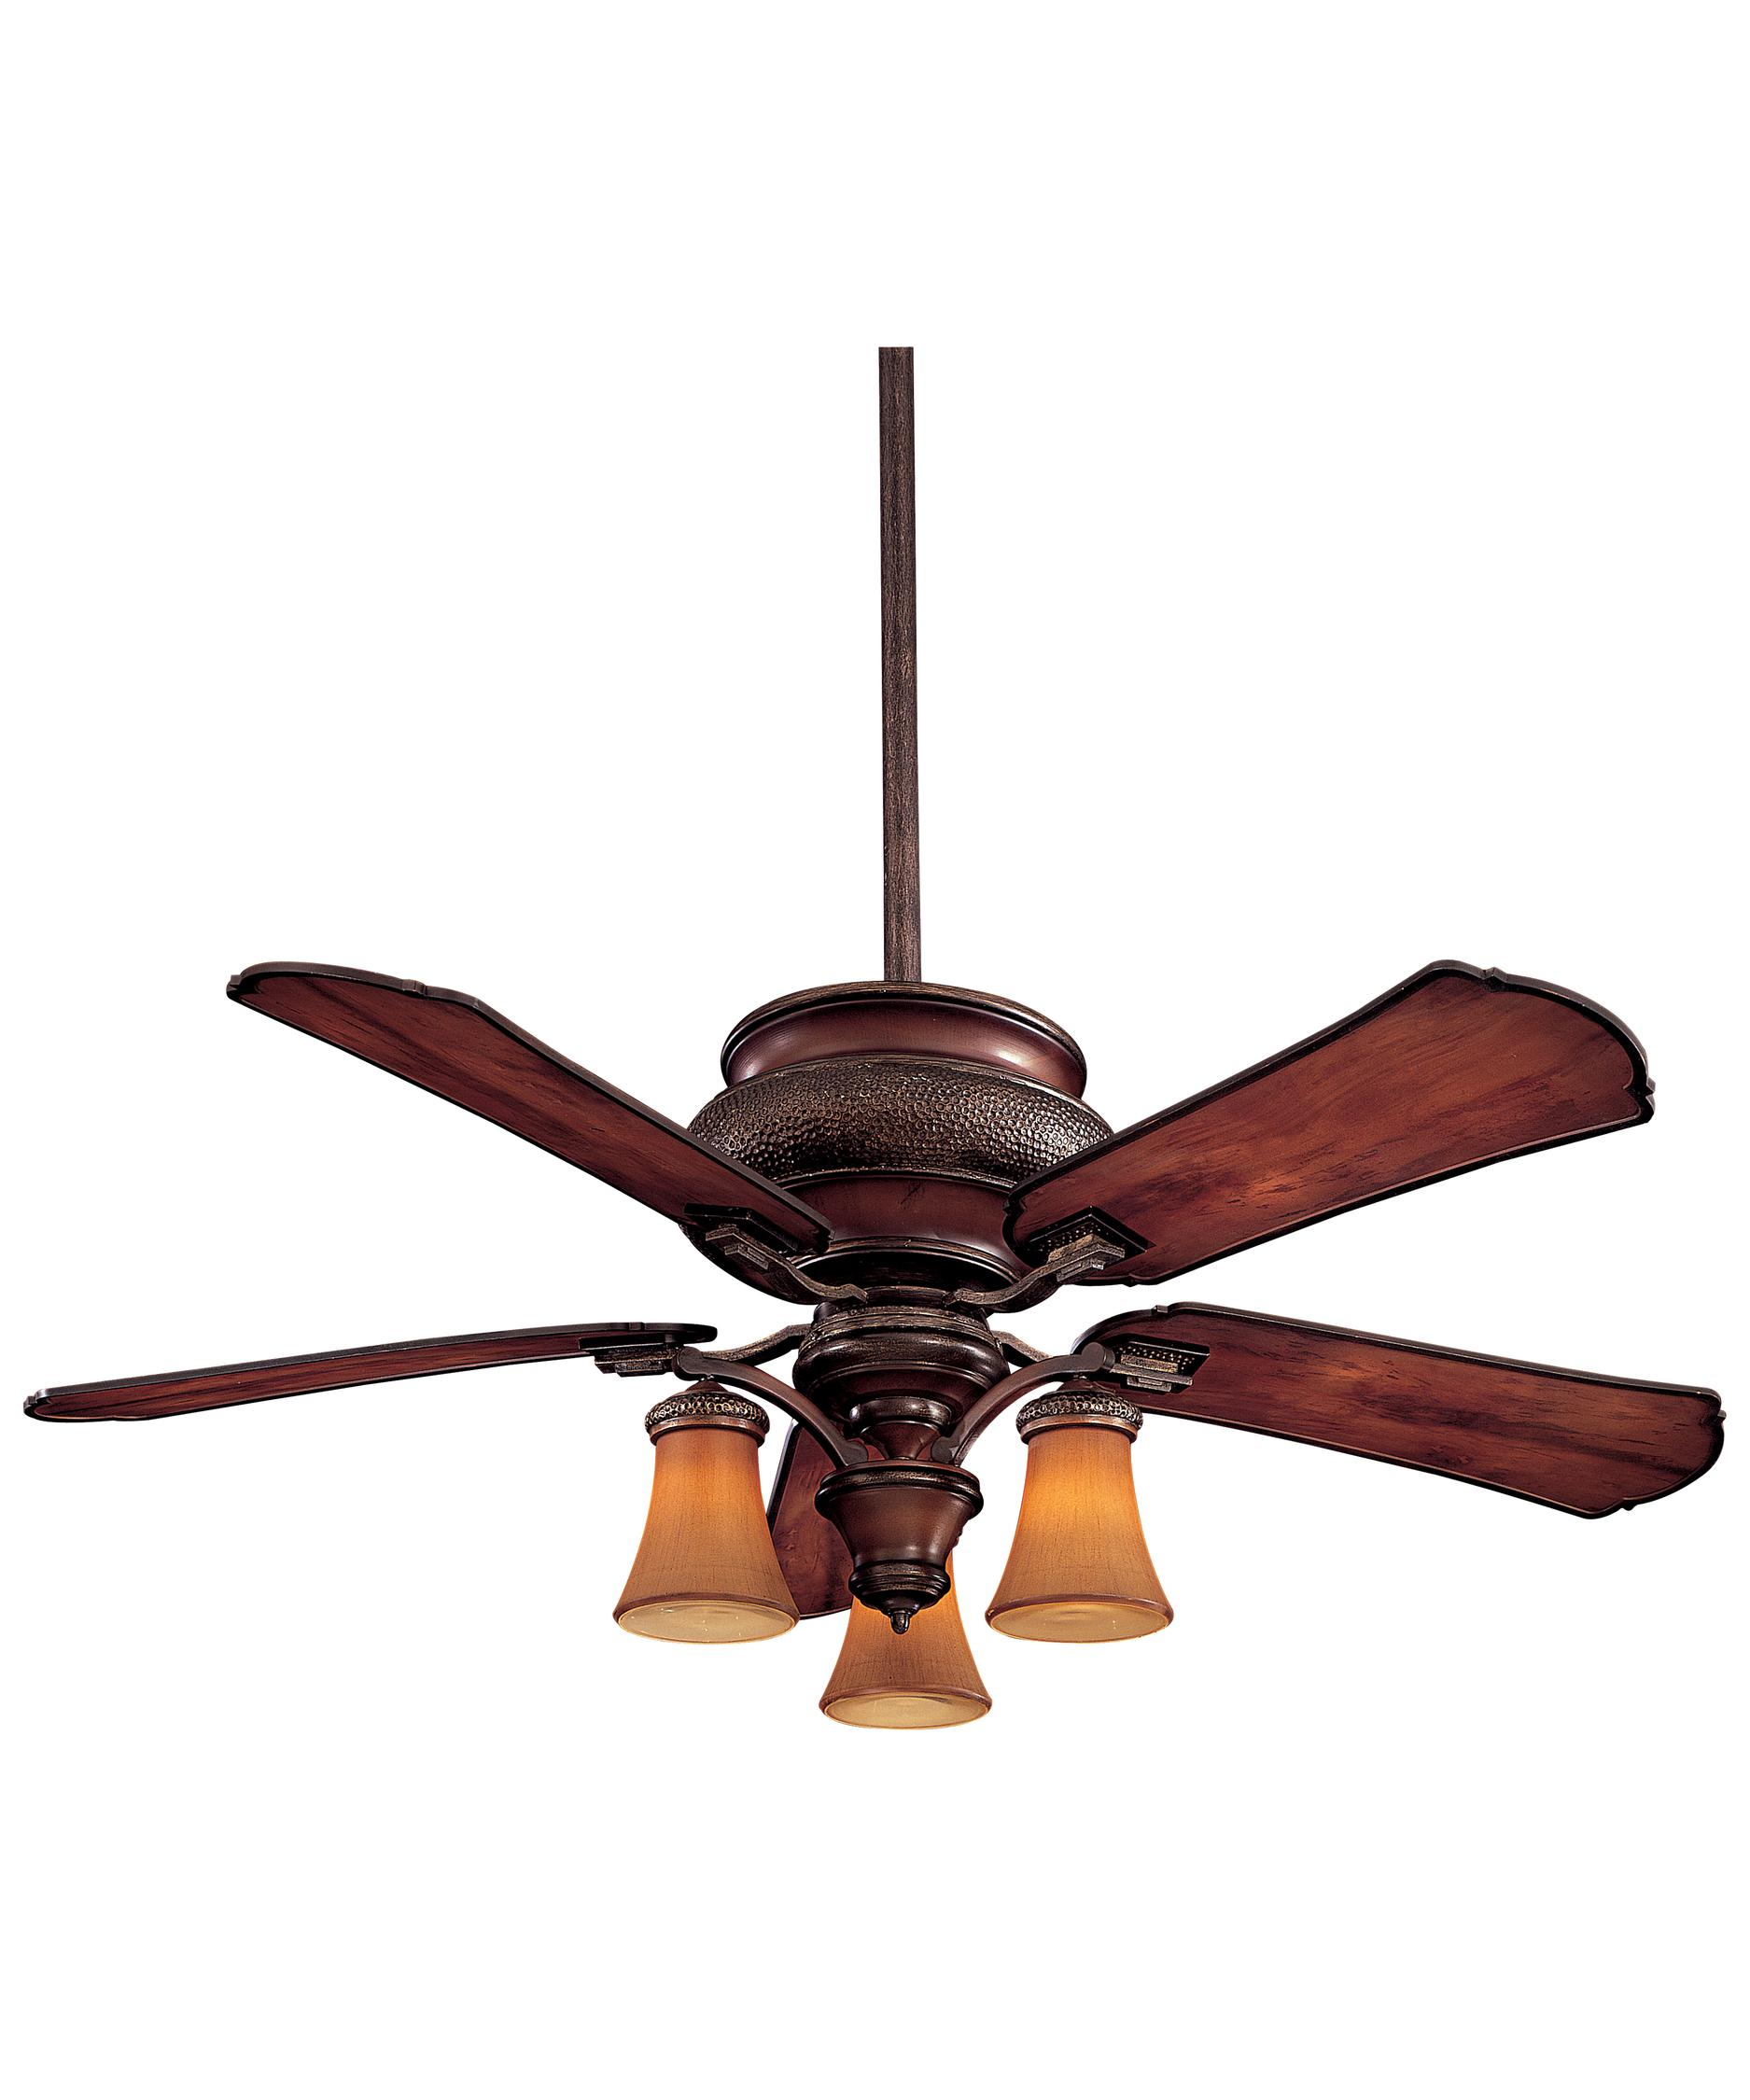 Minka Aire Craftsman 52 Inch 5 Blade Ceiling Fan | Capitol ...:Shown in Craftsman finish and Craftsman glass,Lighting